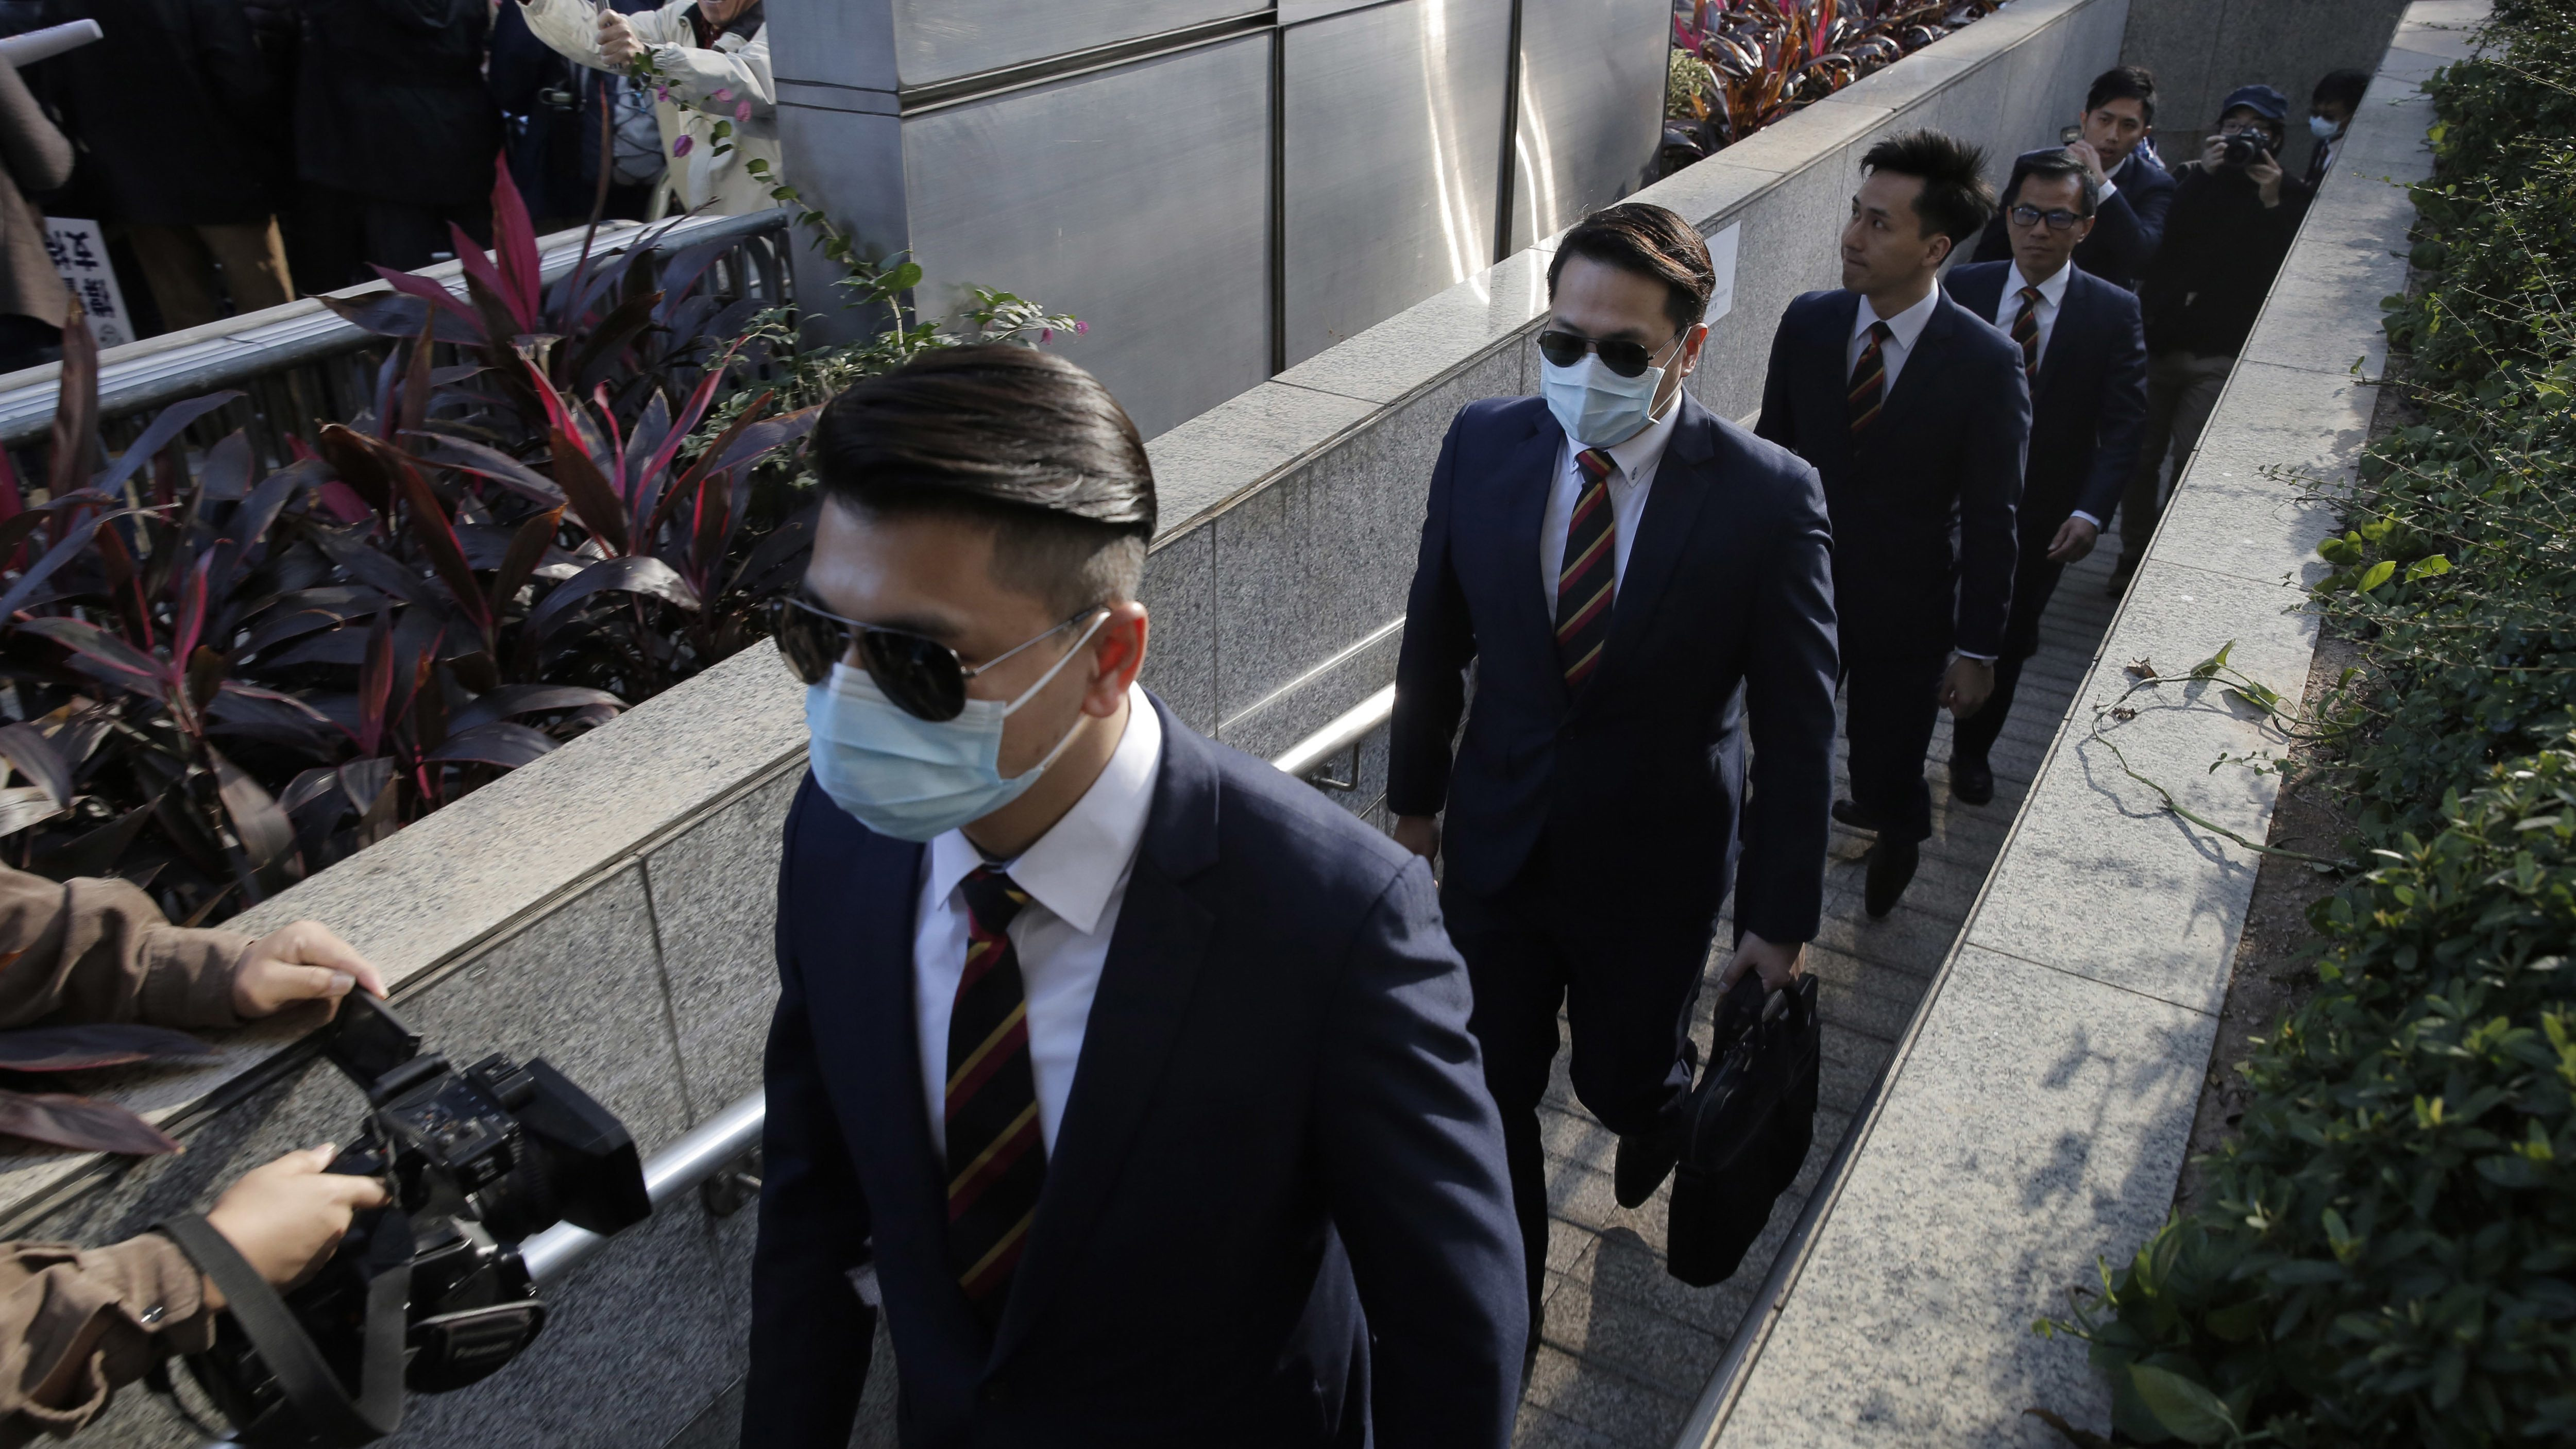 Five of the seven Hong Kong police officers, from left, Police Constable Wong Wai-ho, Police Constable Lau Hing-pui, Senior Inspector Lau Cheuk-ngai, Sergeant Pak Wing-bun and Police Constable Kwan Ka-ho arrive the District Court in Hong Kong Tuesday, Feb. 14, 2017 as they were charged with assaulting a pro-democracy activist in an incident on Oct. 15 2014. Seven Hong Kong police officers have been found guilty of a lesser charge in the assault of a pro-democracy activist whose videotaped beating during the height of 2014 pro-democracy protests sparked outrage. A district court judge found the seven officers guilty of one joint count of assault occasioning actual bodily harm on Tuesday.